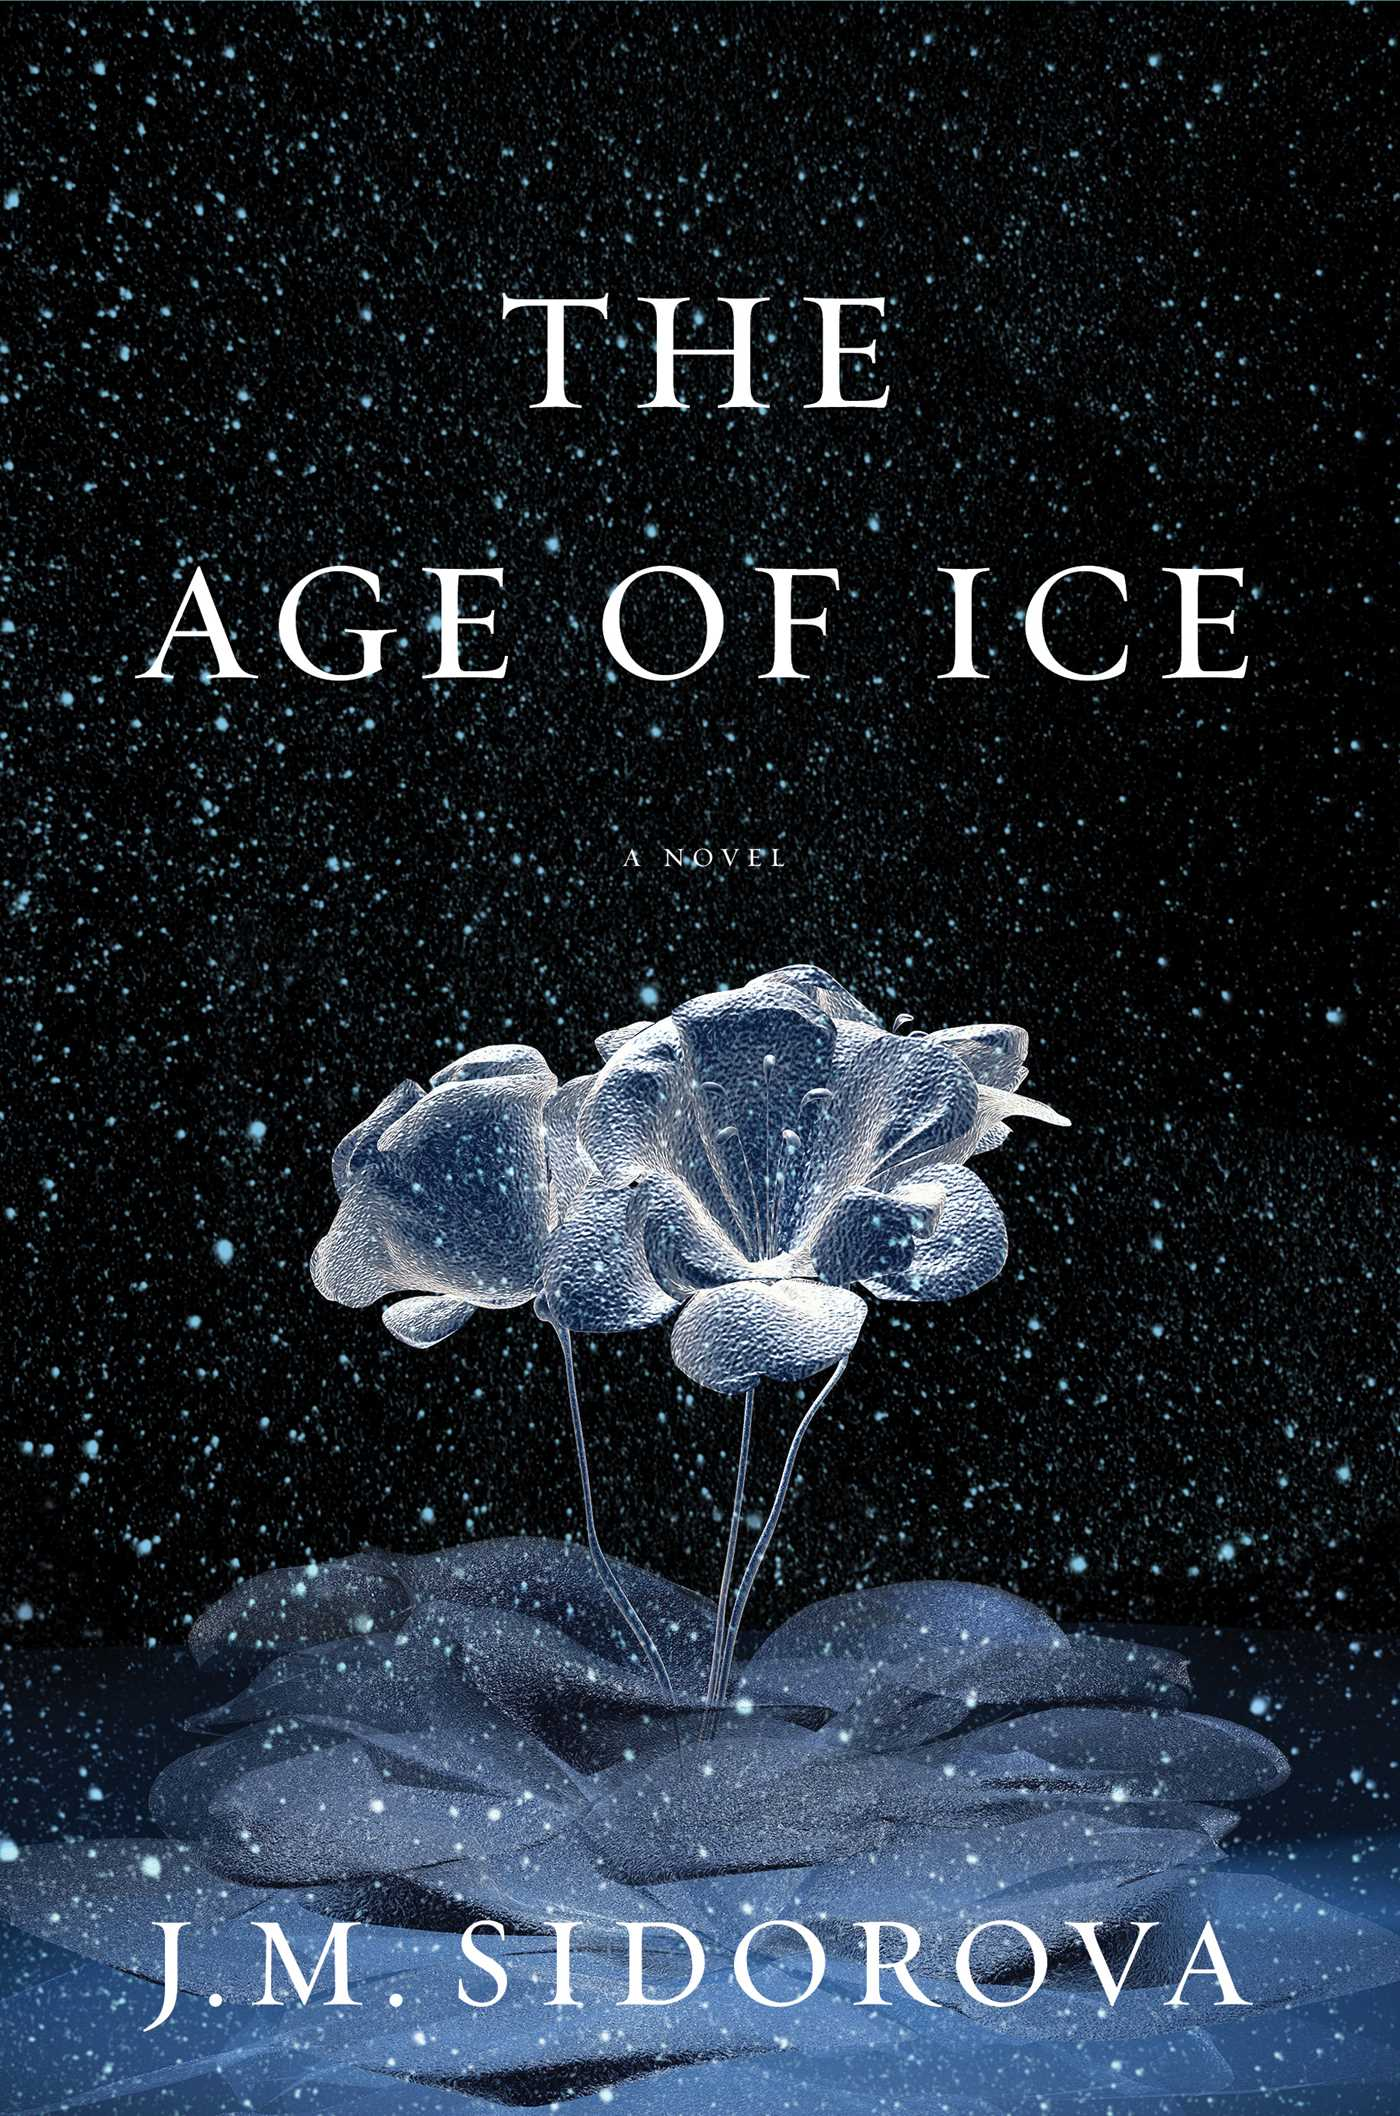 The age of ice 9781451692730 hr